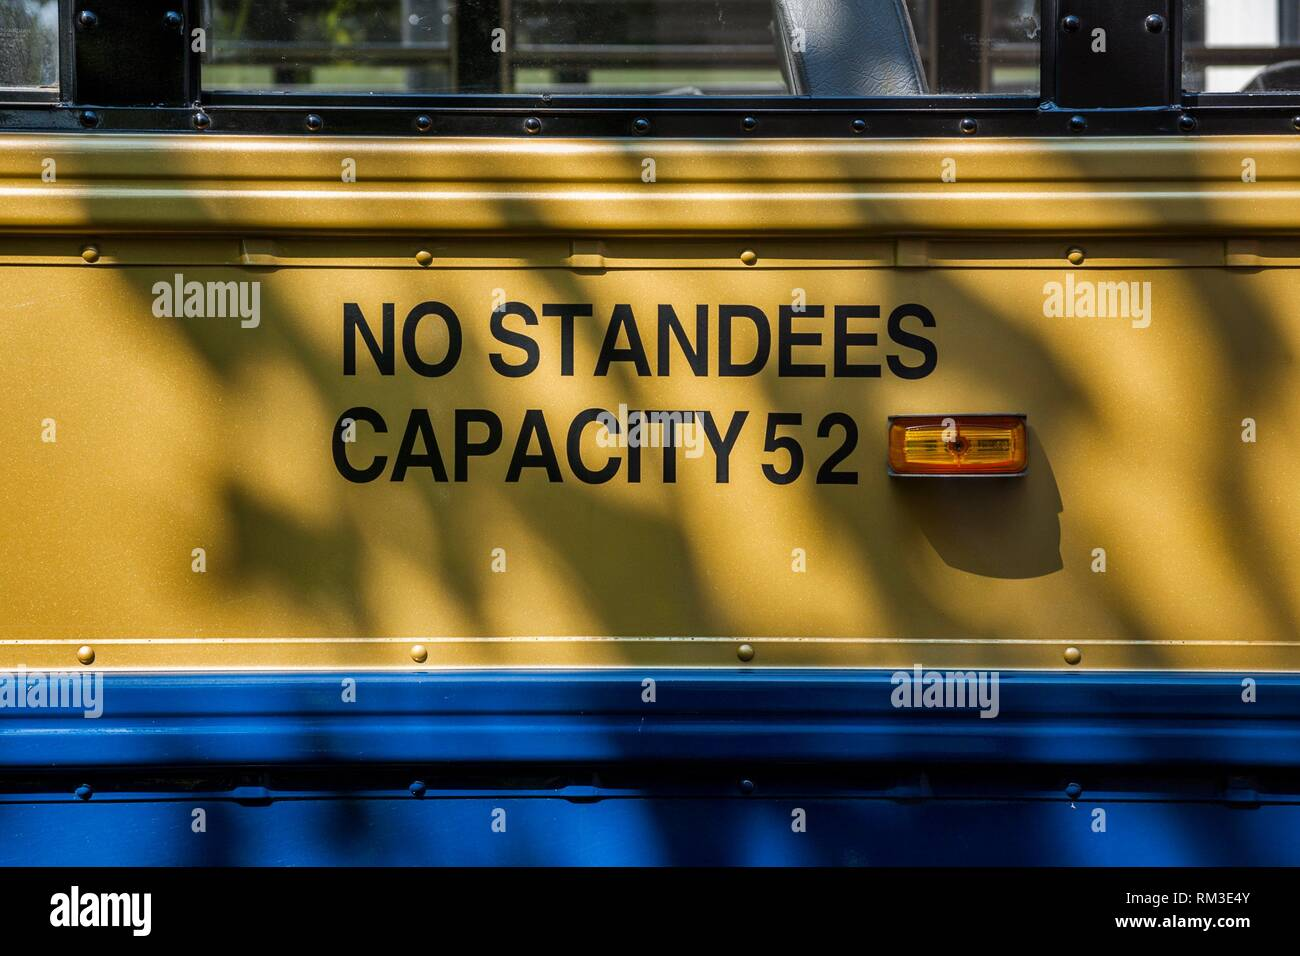 '''''No Standees-Capacity 52'' sign written on side of a yellow school bus. - Stock Image